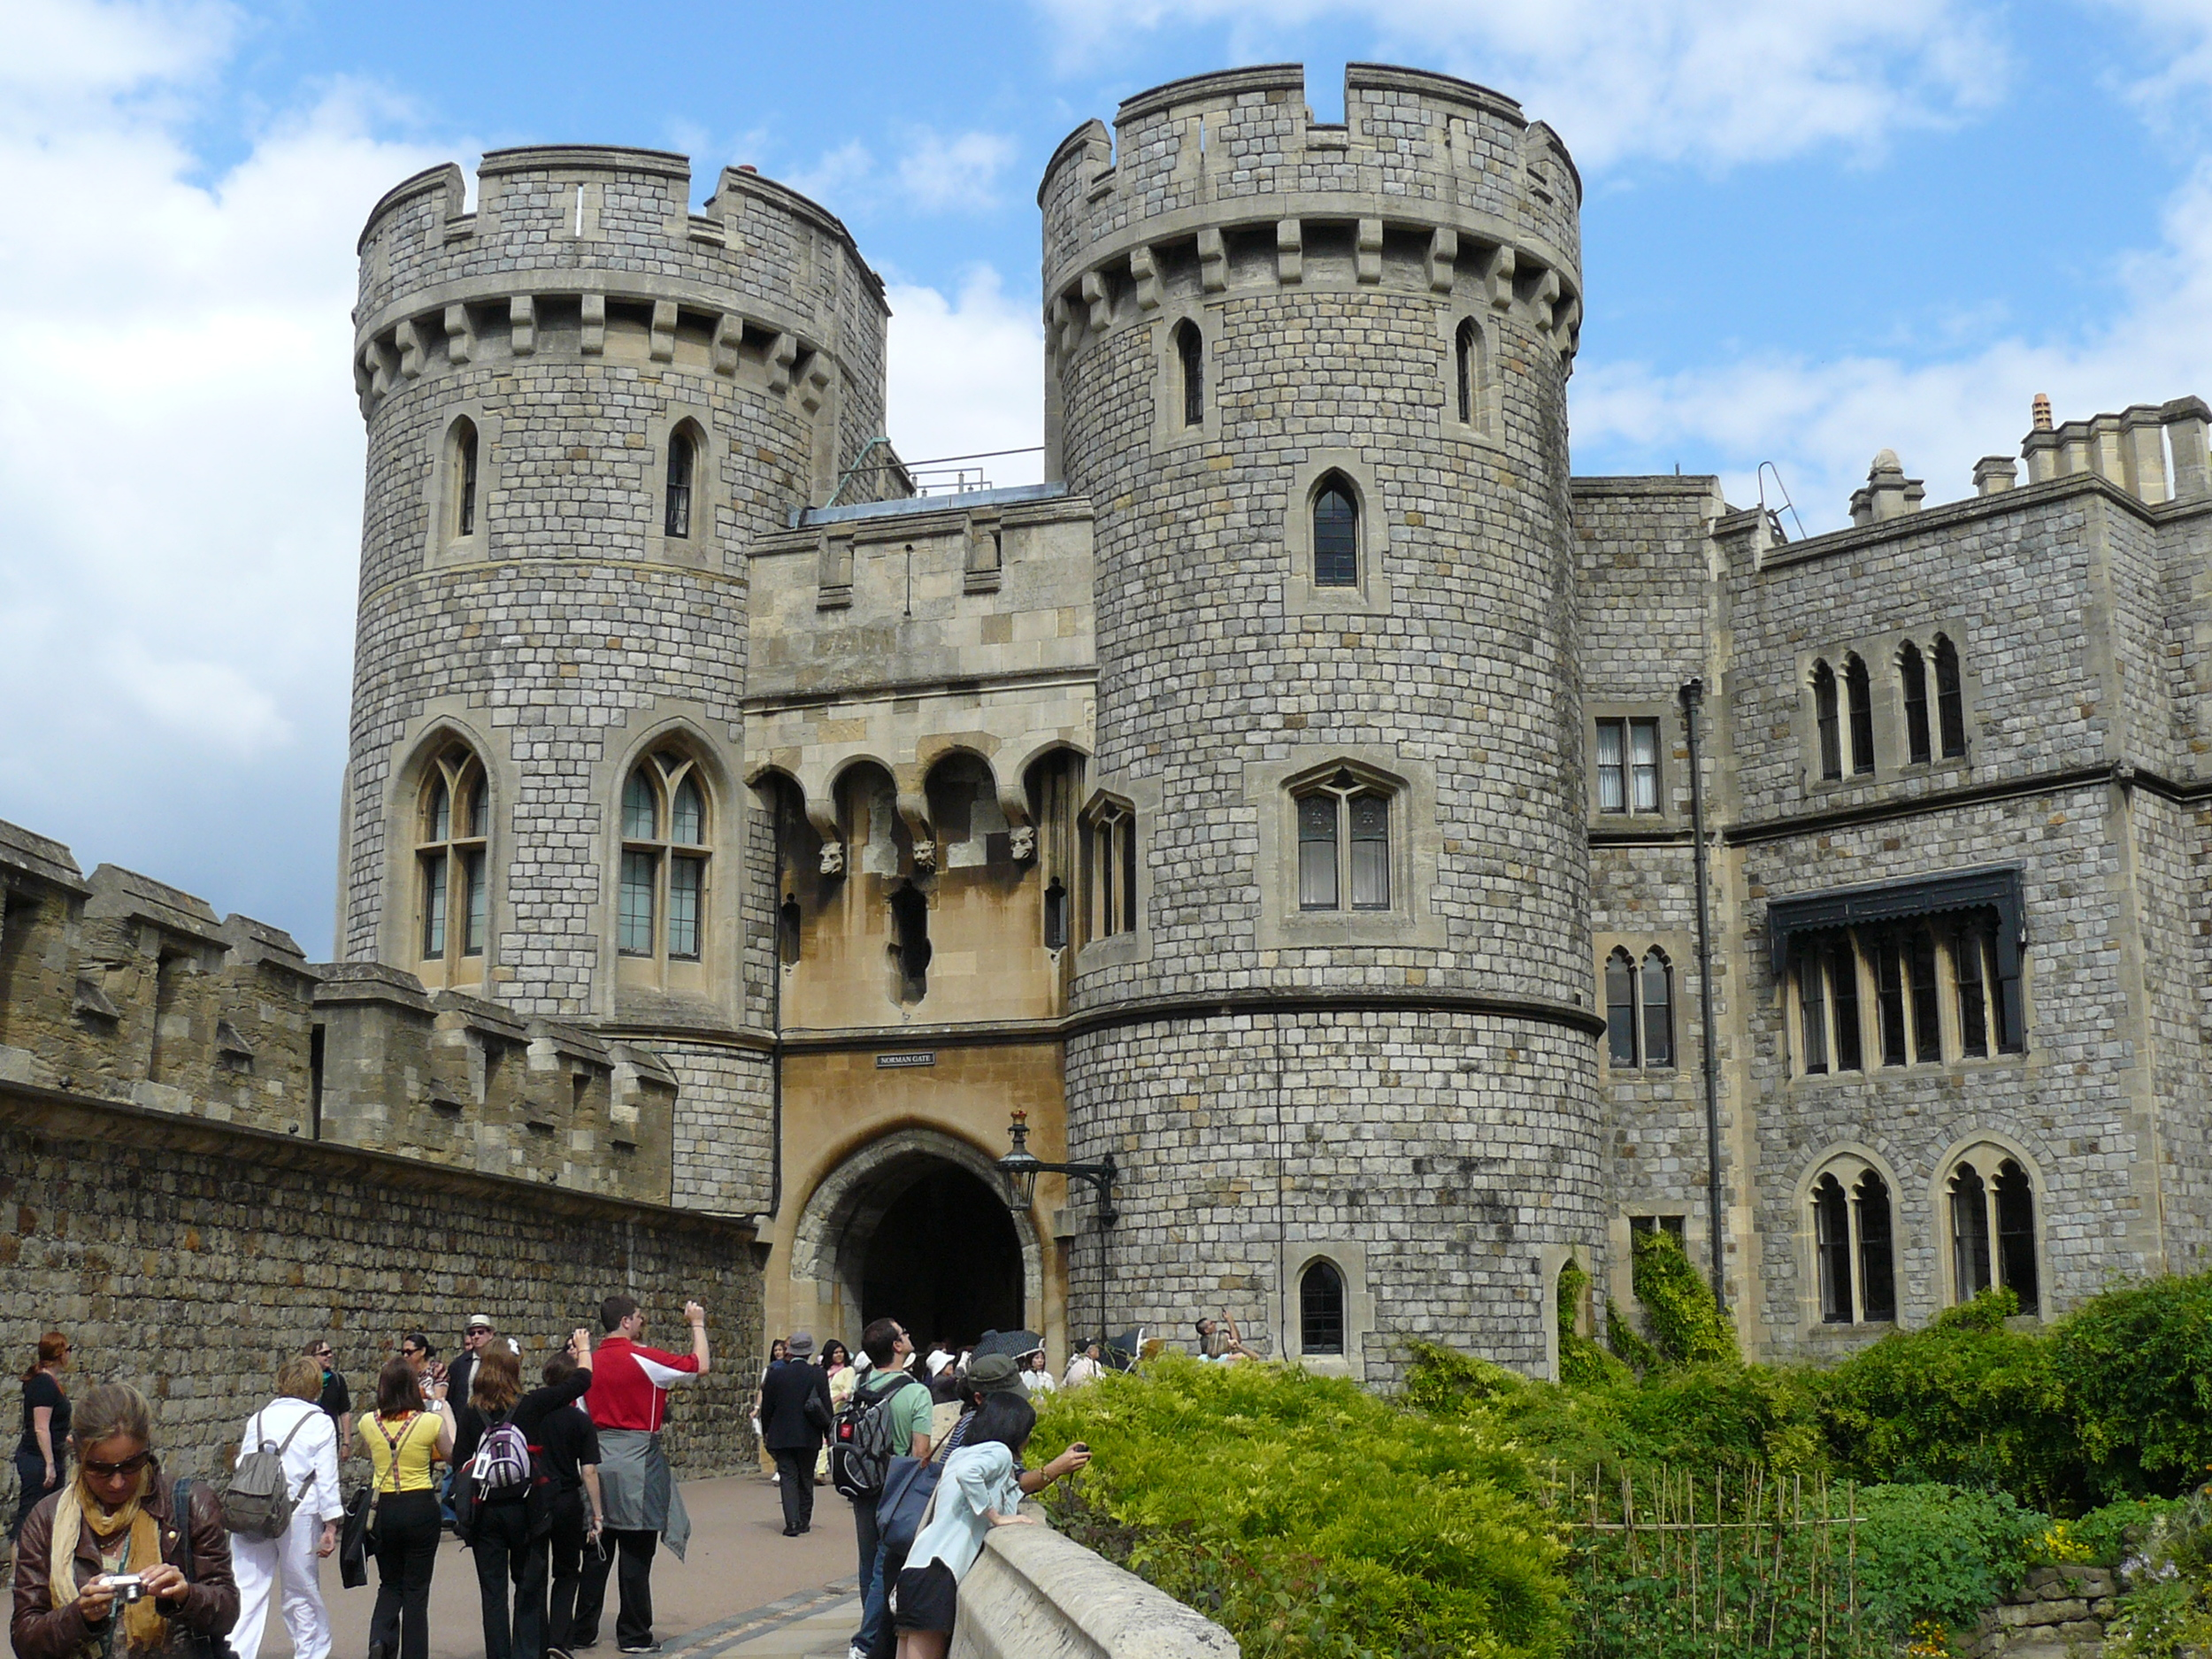 The gates into Windsor Castle.